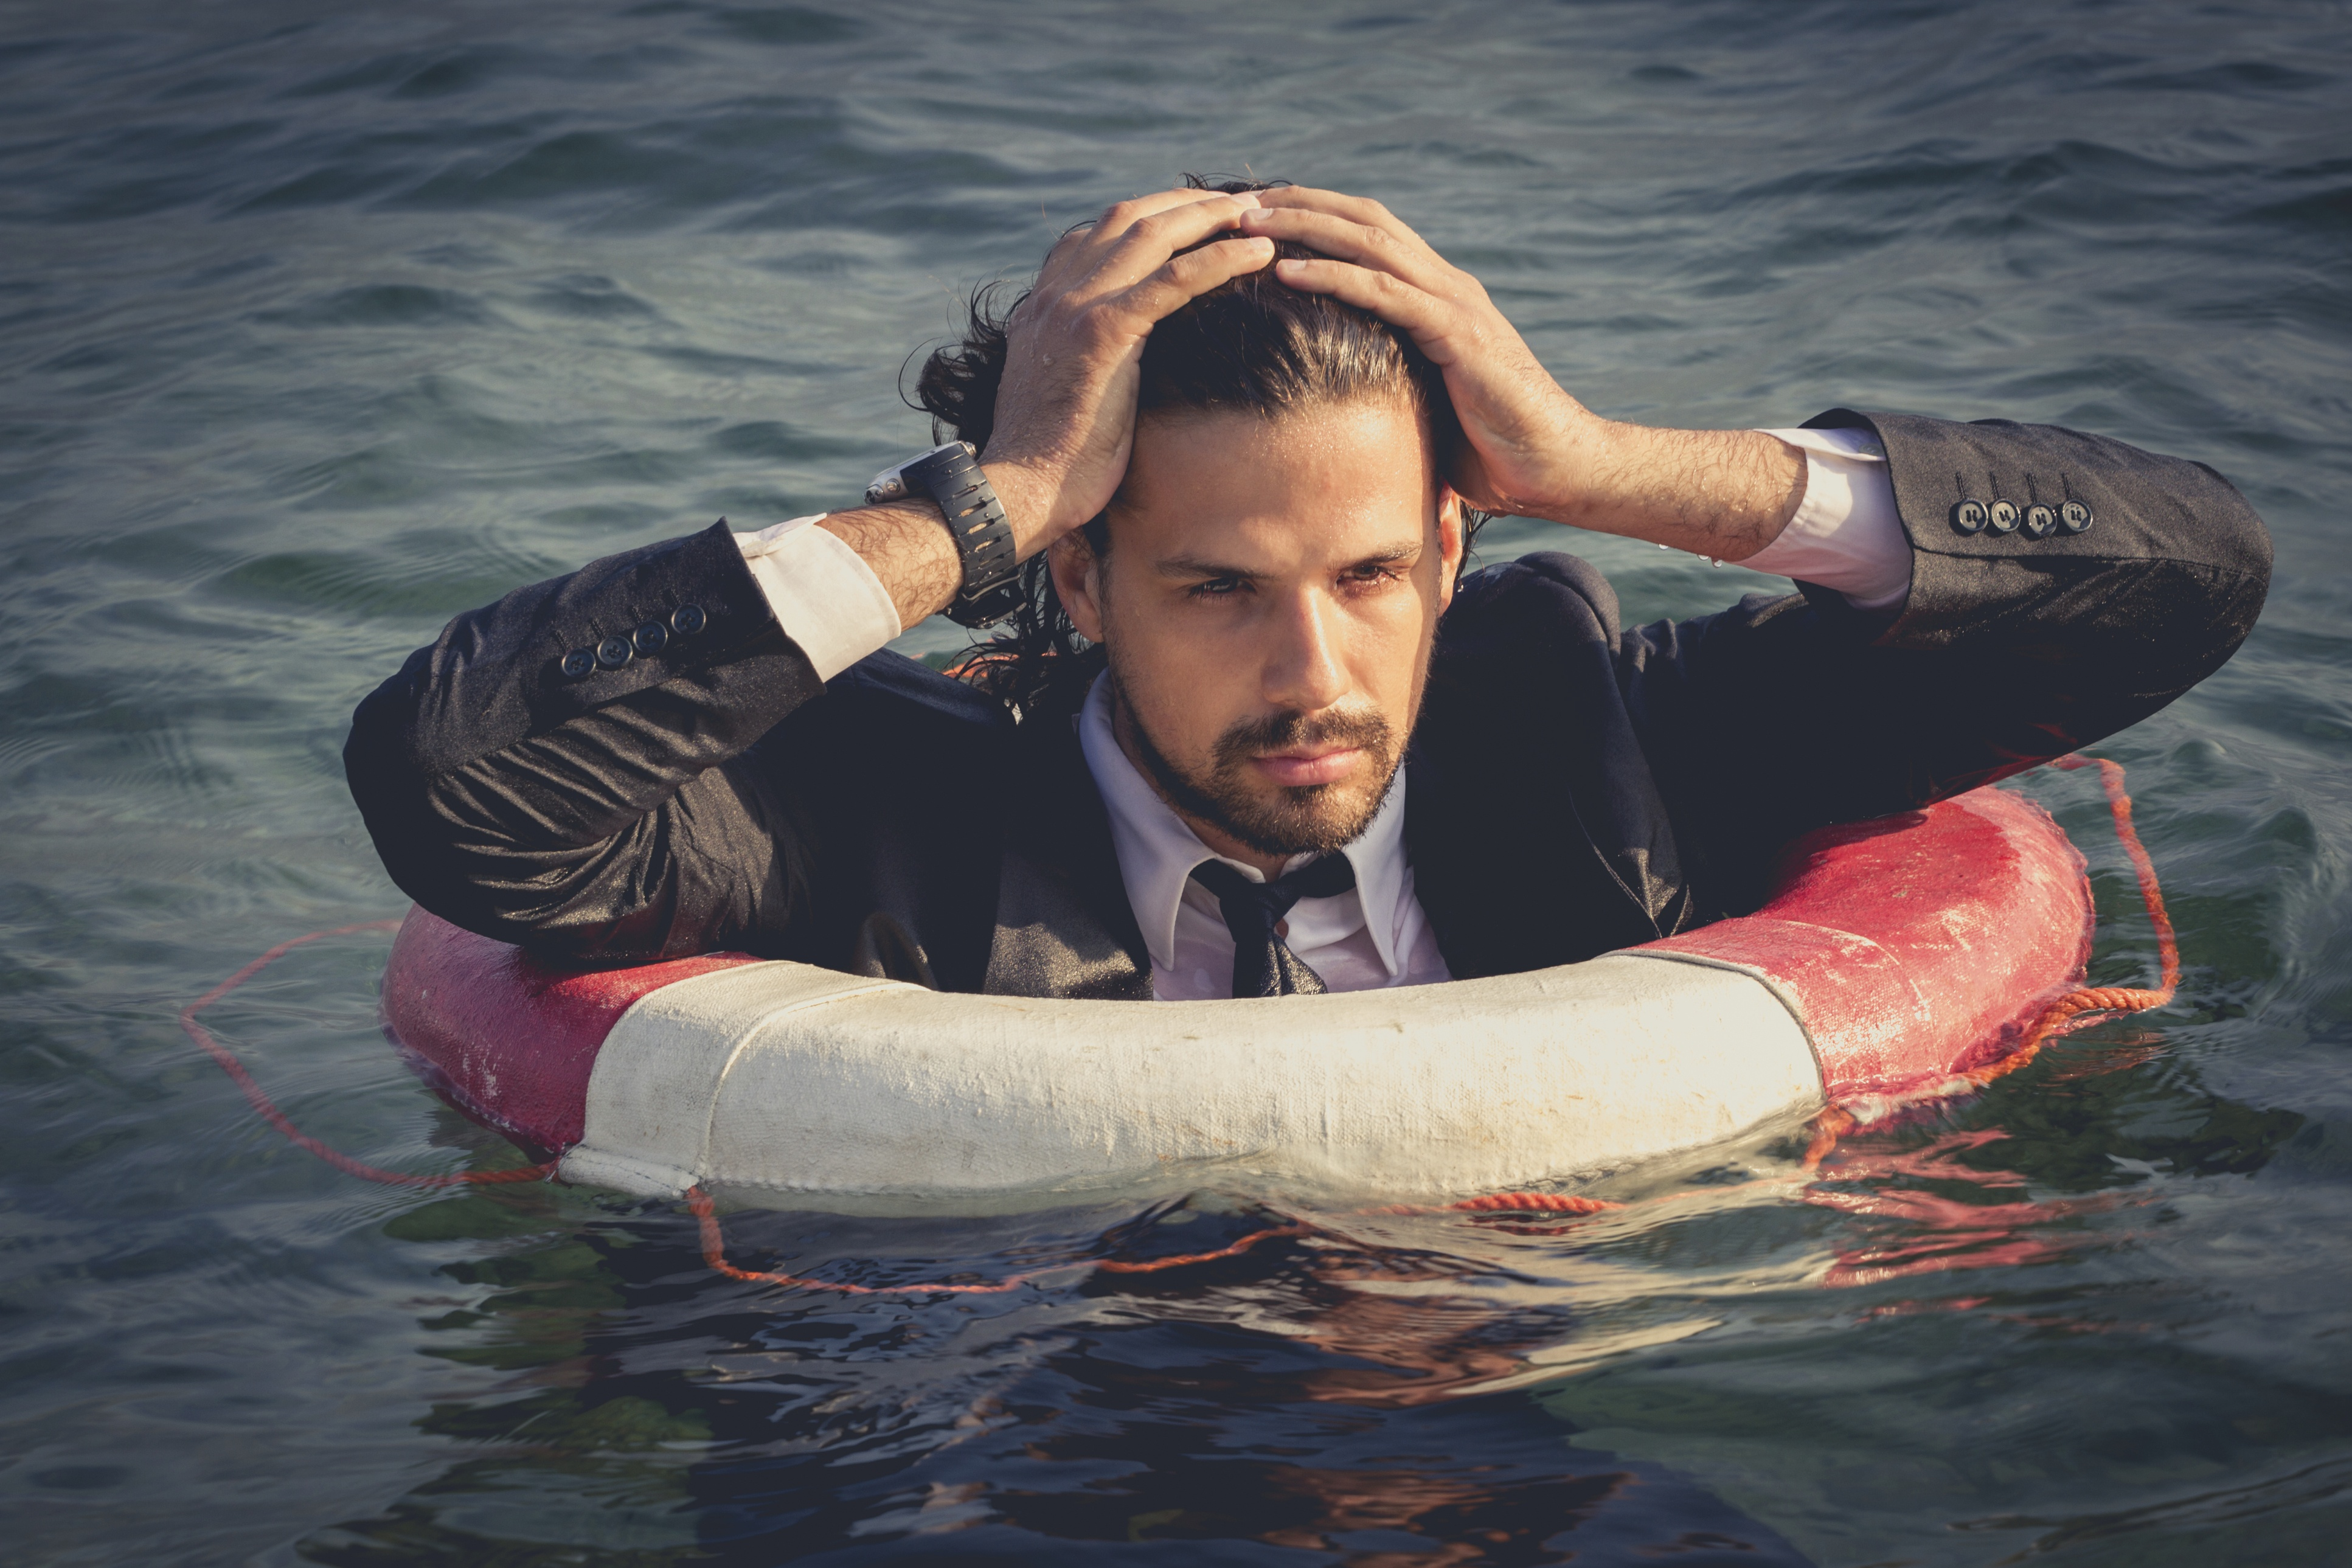 A businessman in a floatation device.